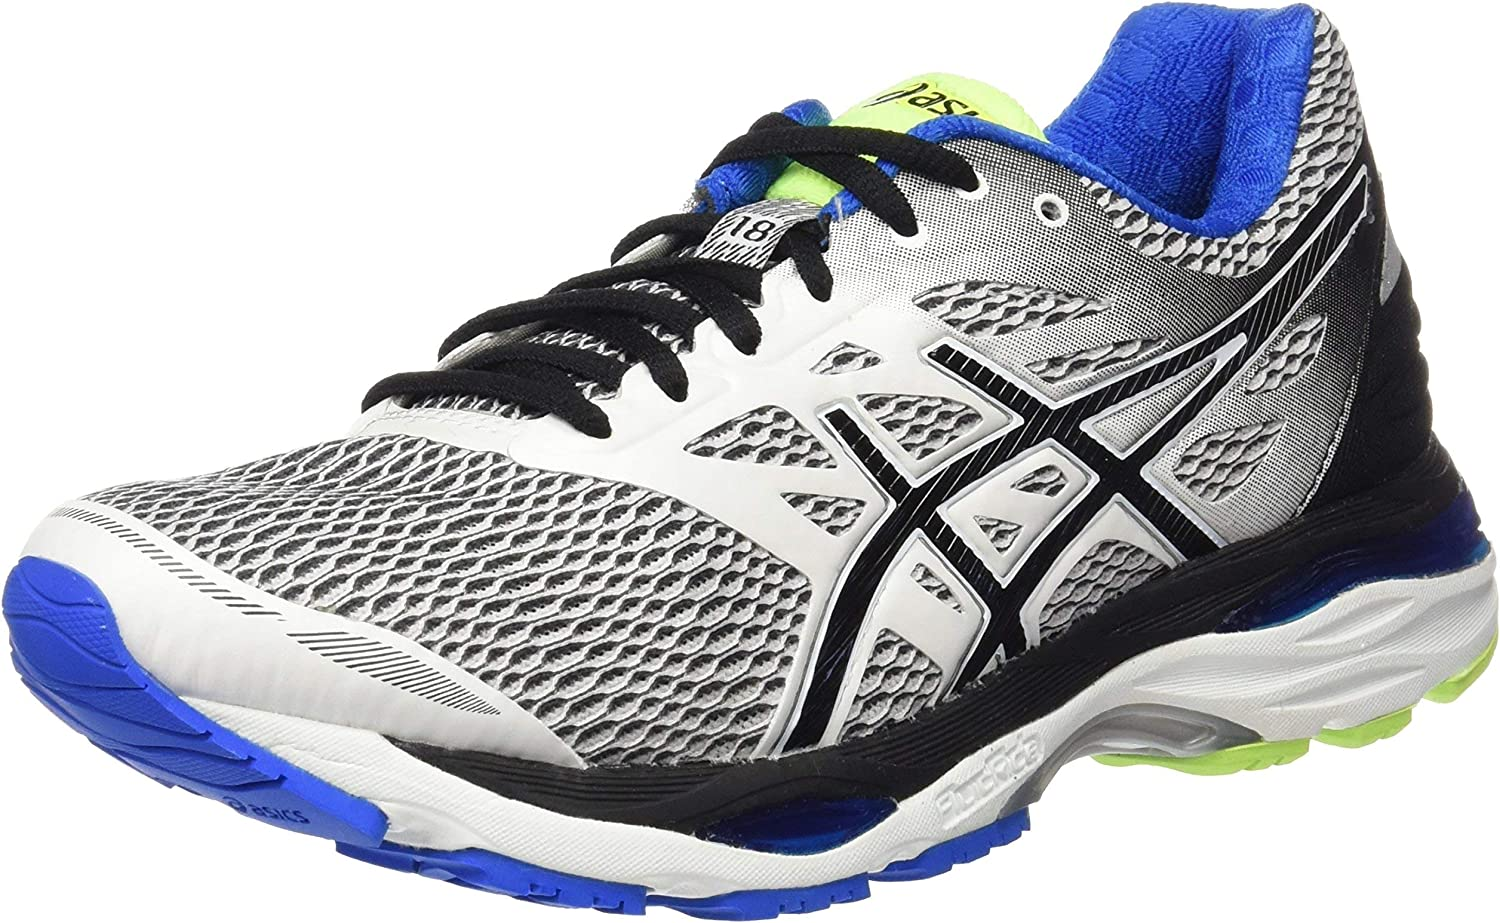 ASICS T6C3N0190, Zapatillas De Running para Hombre, Blanco (White / Black / Electric Blue), 39.5 EU: Amazon.es: Zapatos y complementos